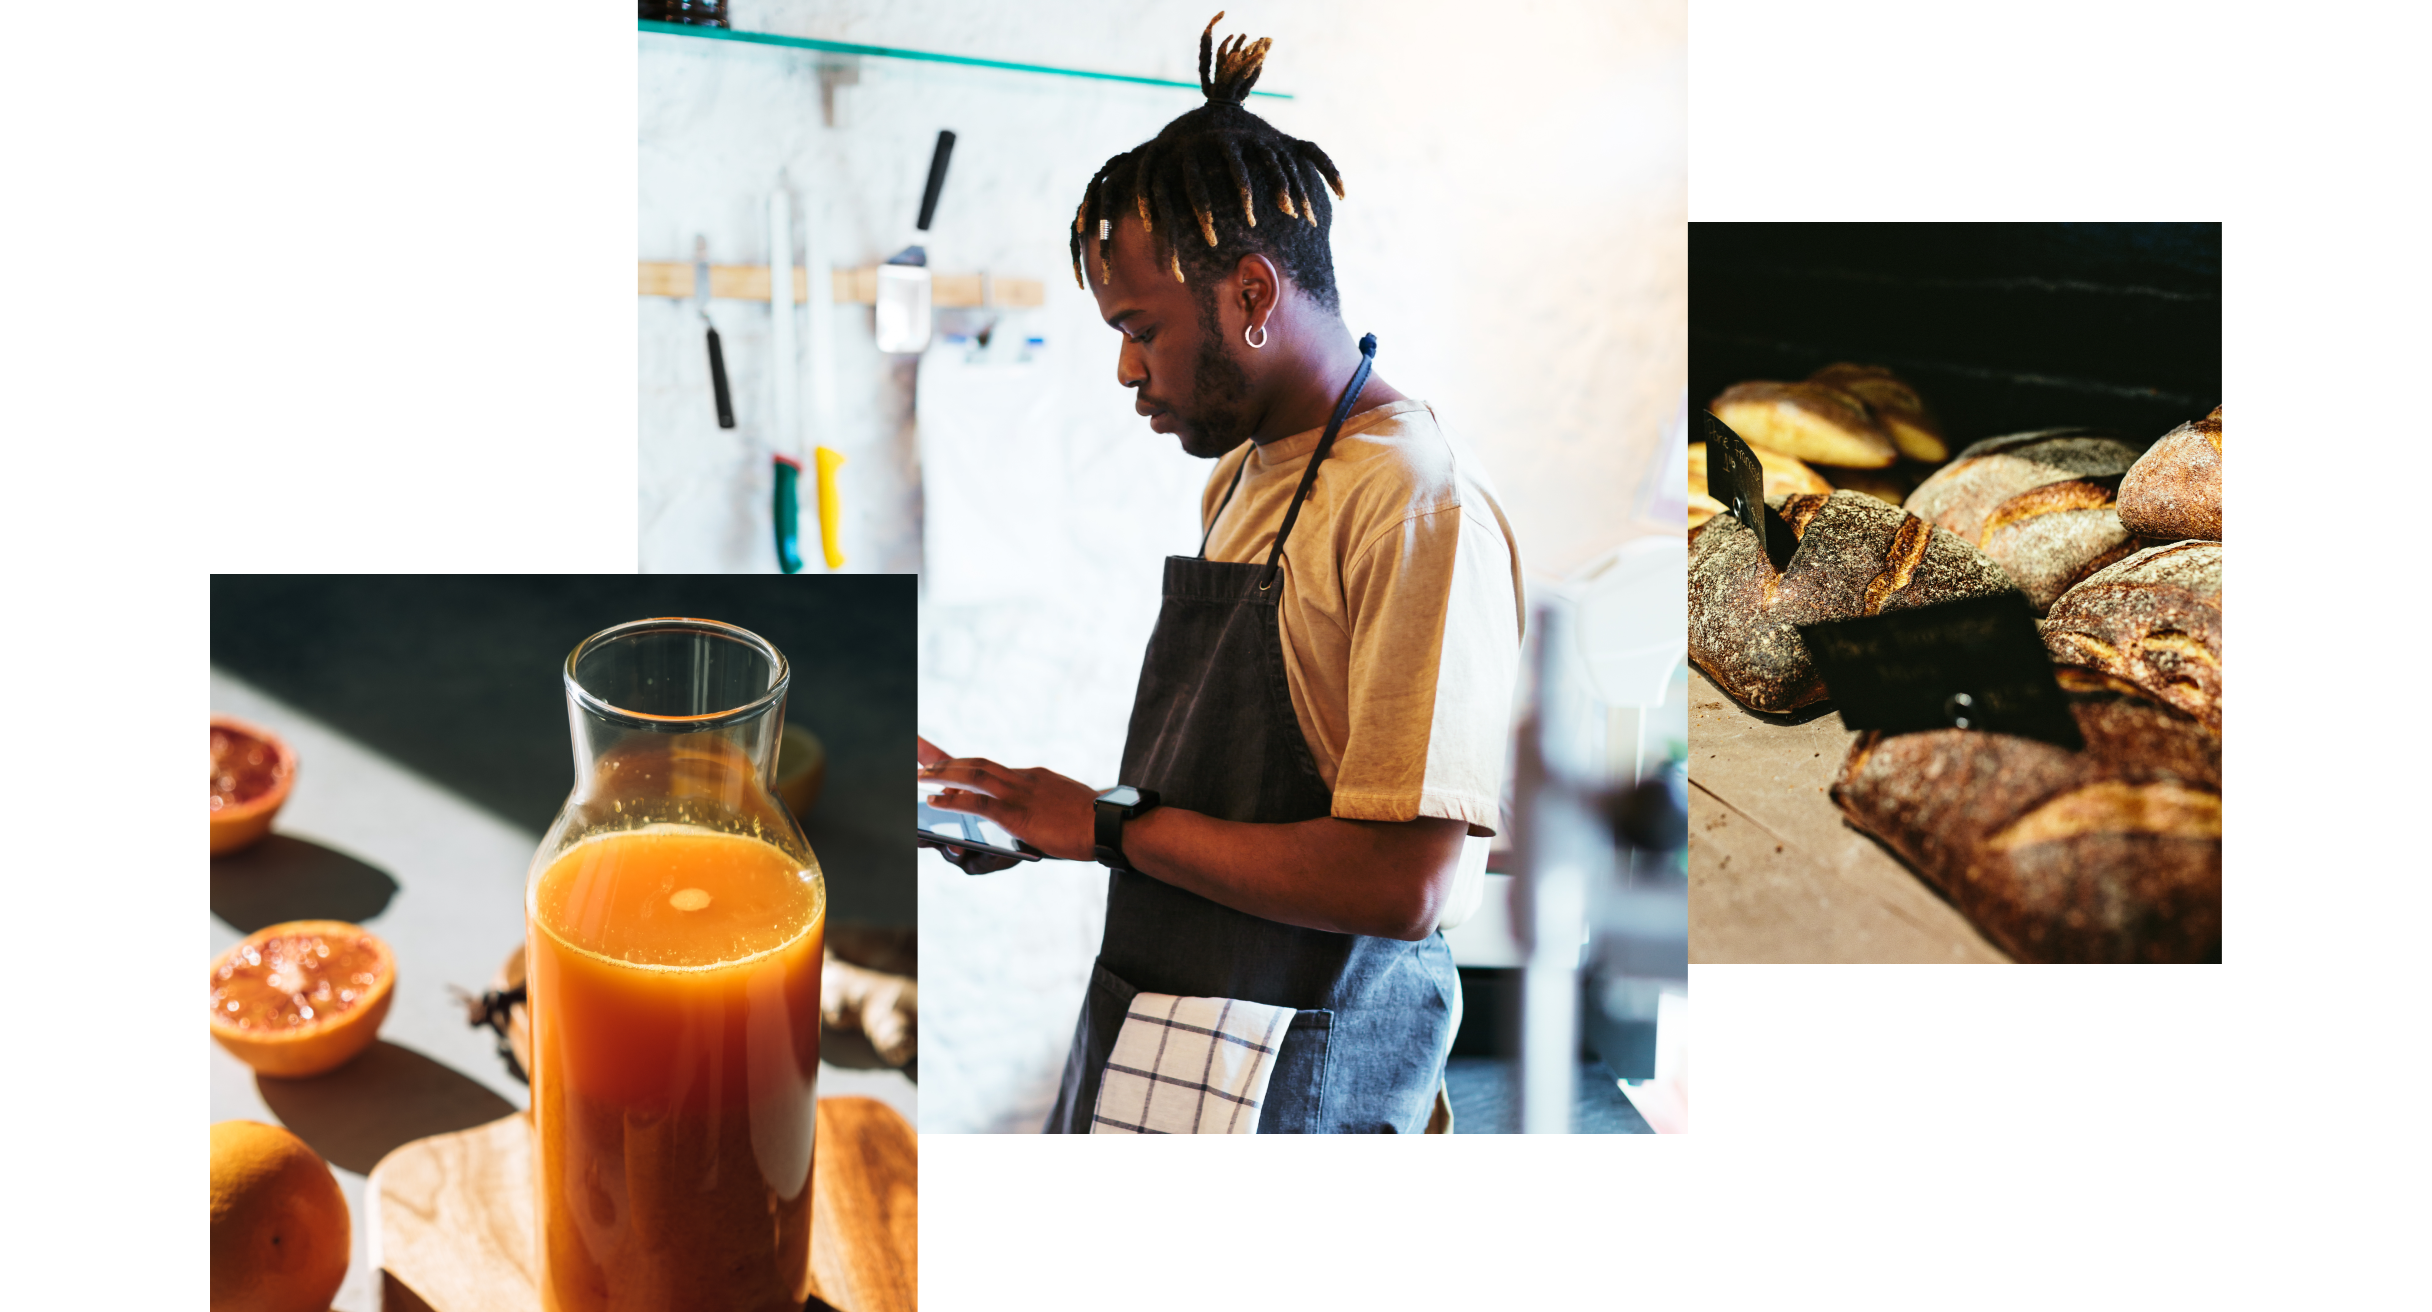 Three images showing a carafe of orange juice and orange slices, a Black male in a black bib apron and loaves of bread on a display table